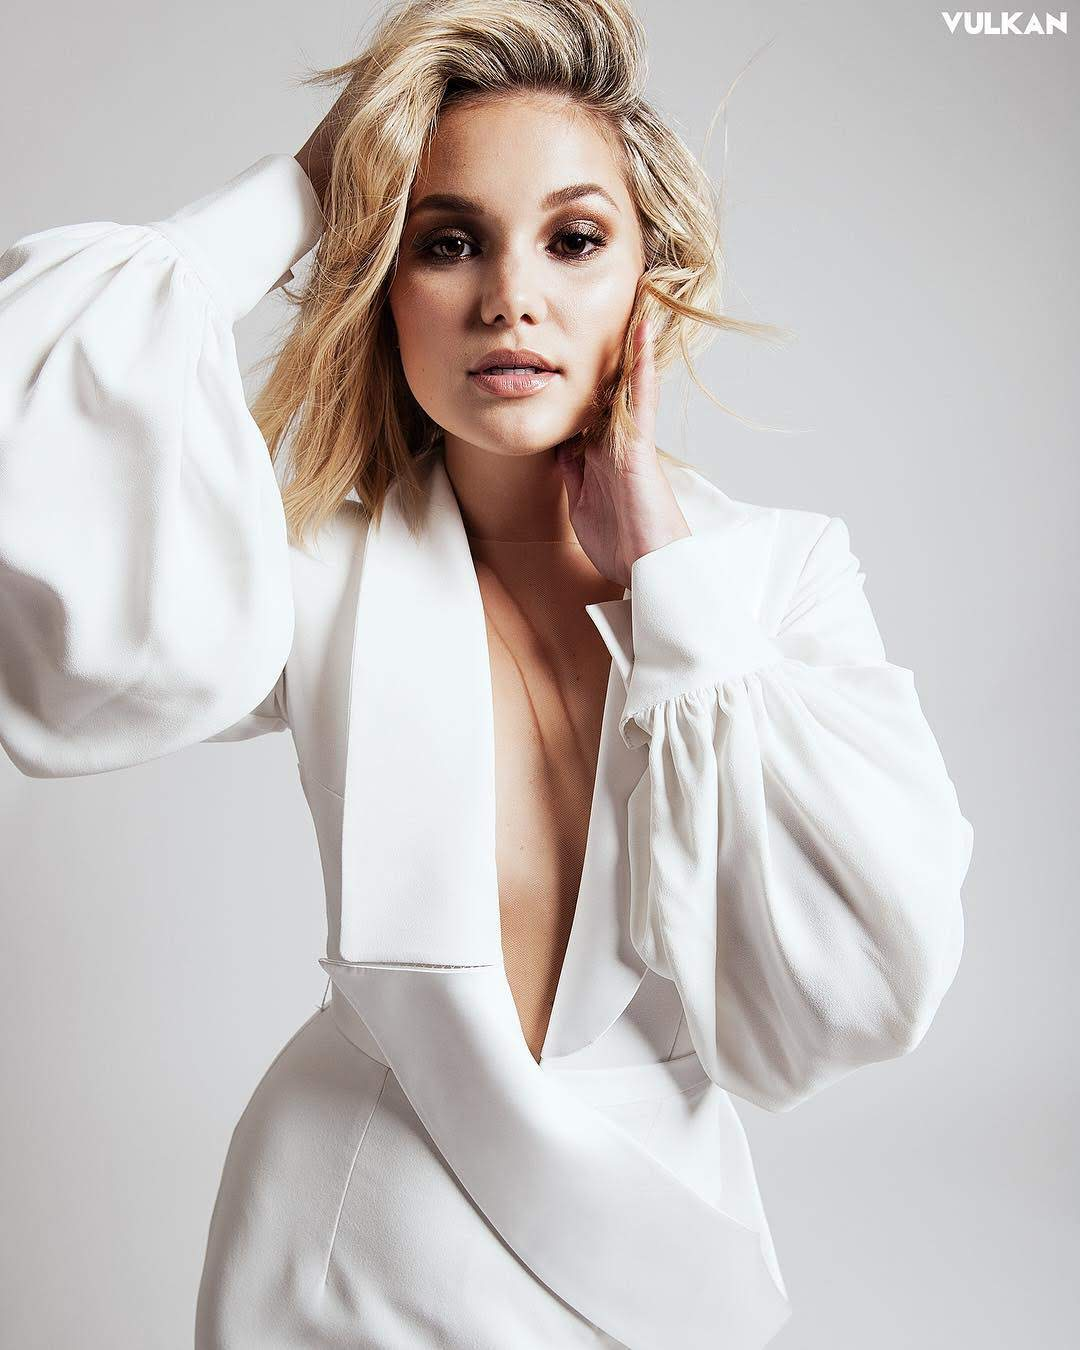 Olivia Holt Appeared in the Vulcan Magazine